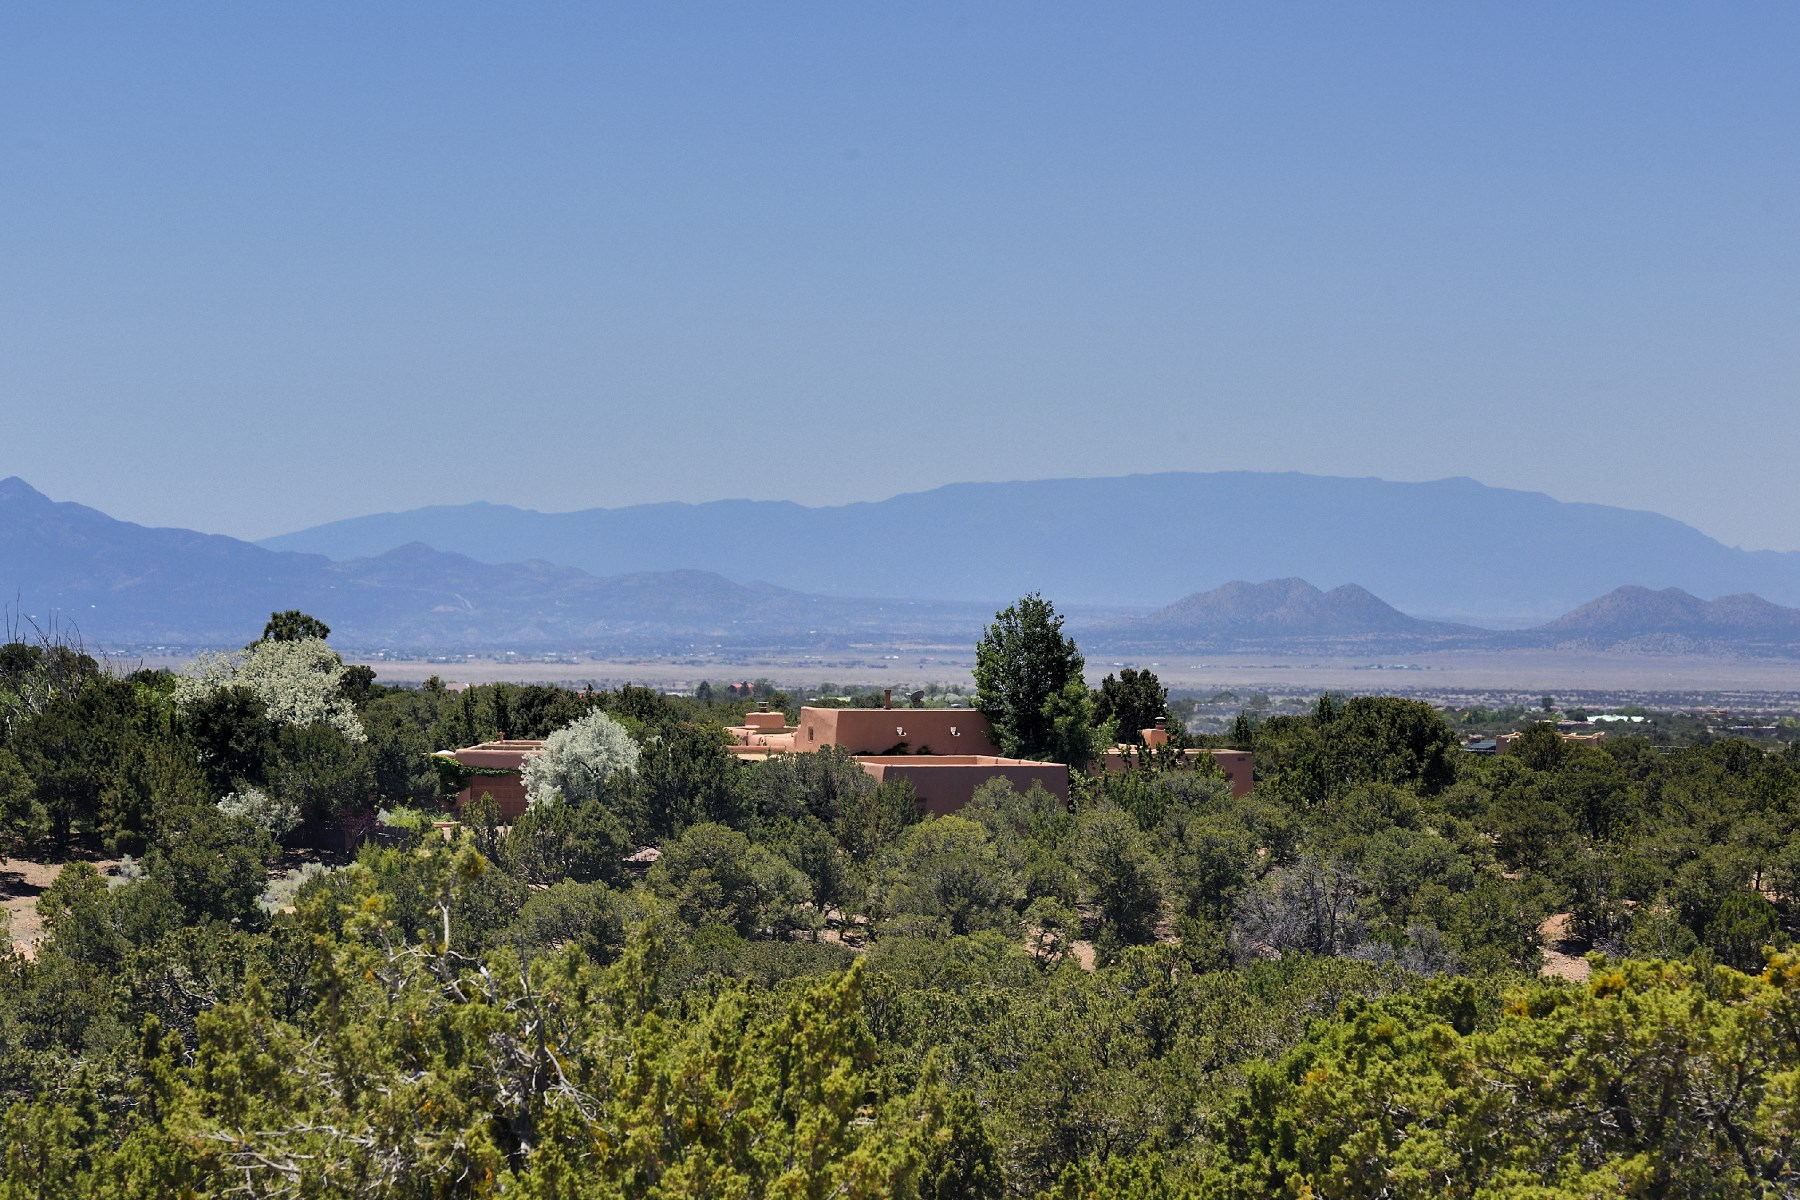 Single Family Home for Sale at 7255A Old Santa Fe Trail Santa Fe, New Mexico, 87505 United States